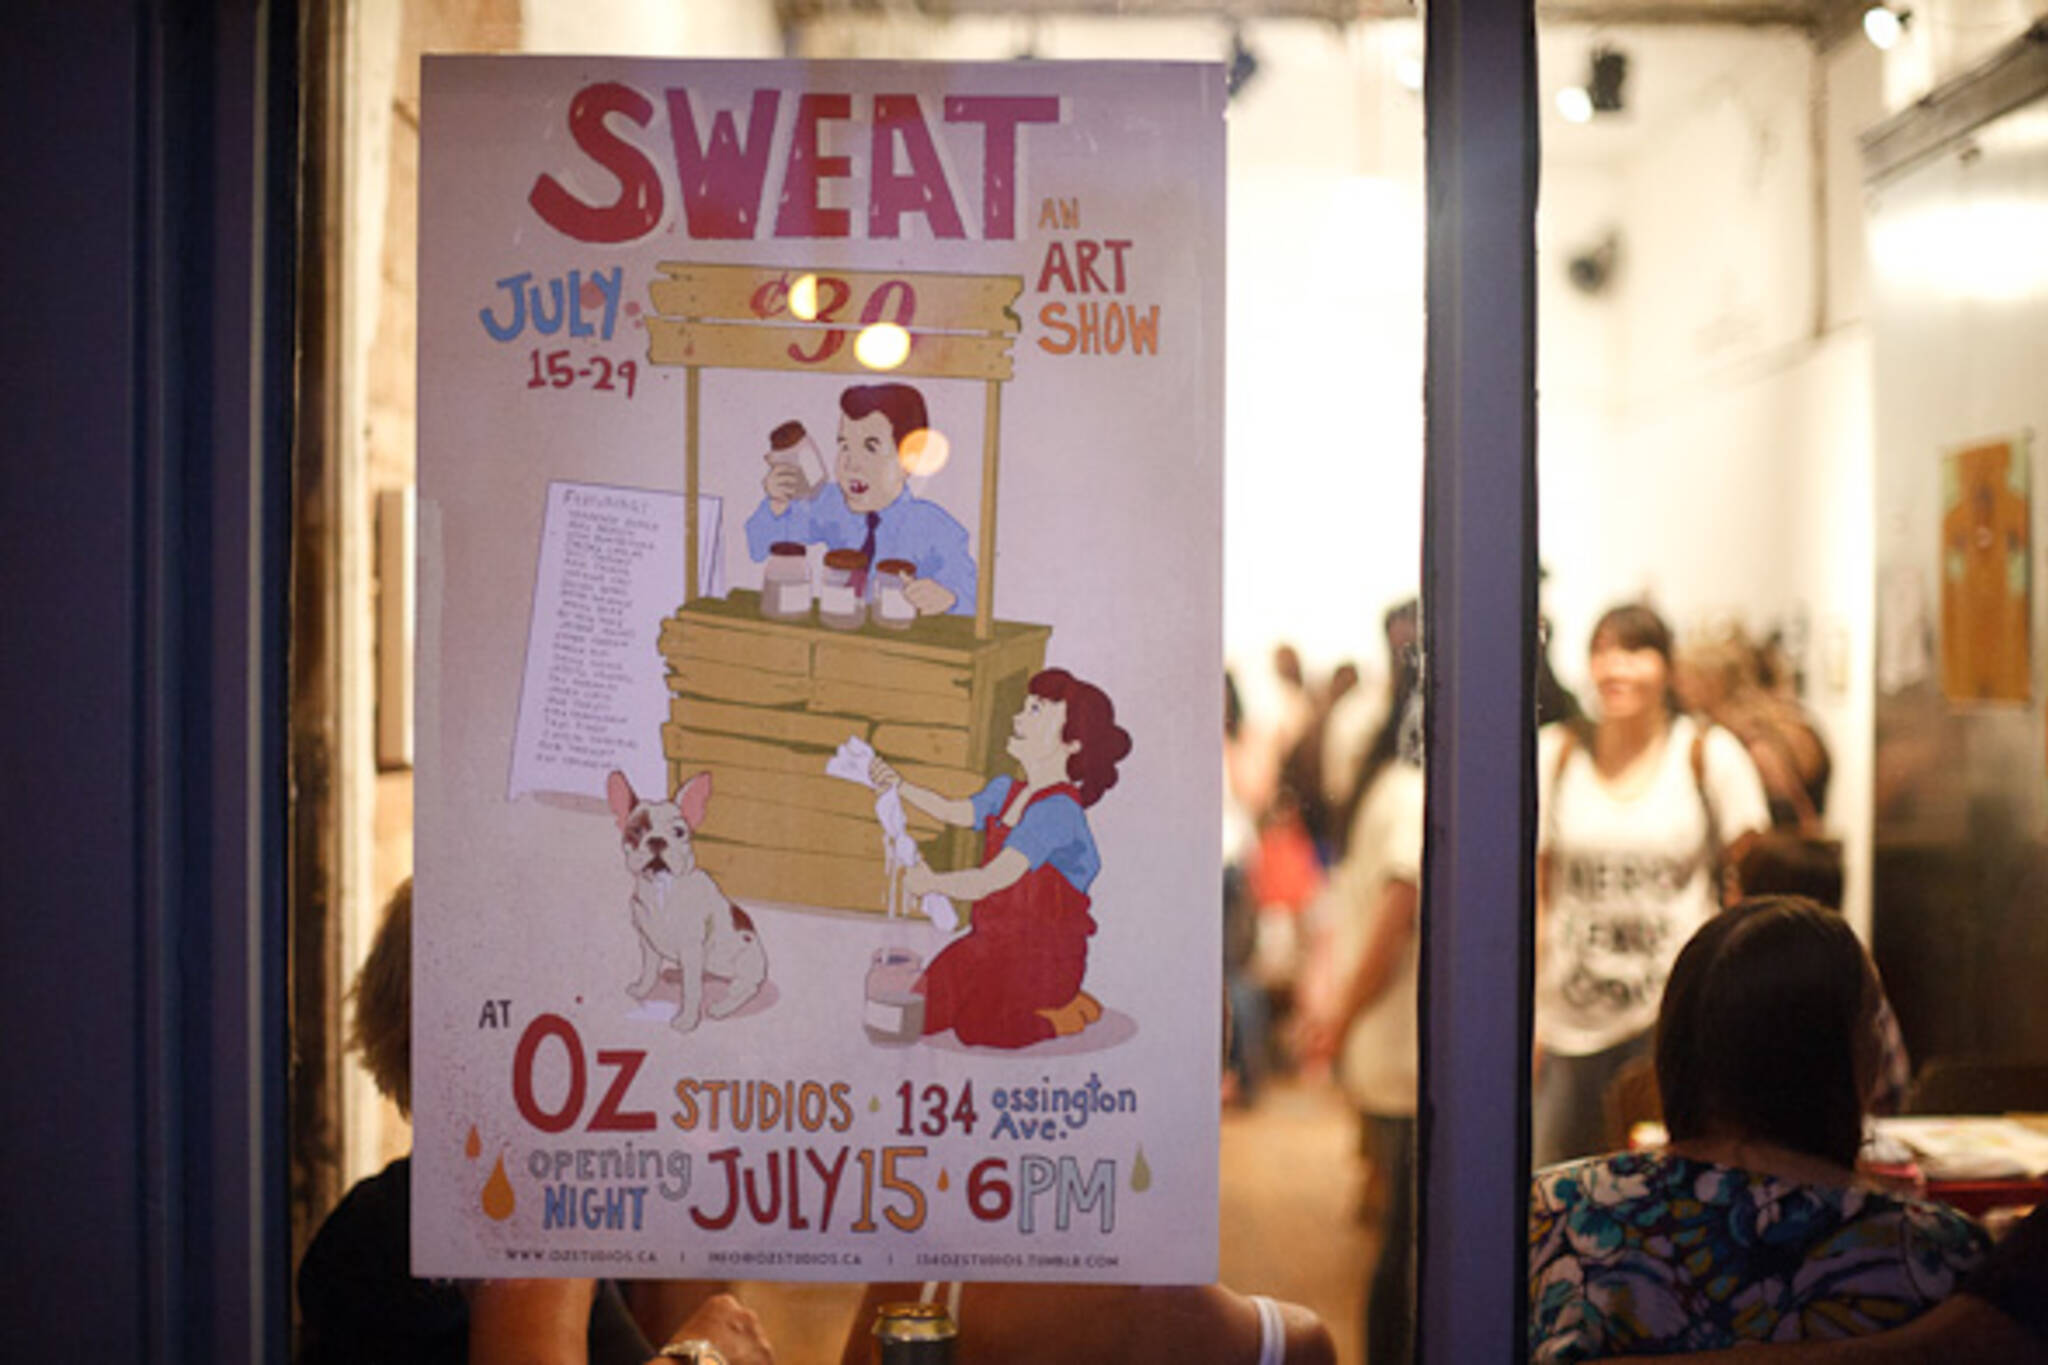 Sweat Art Show